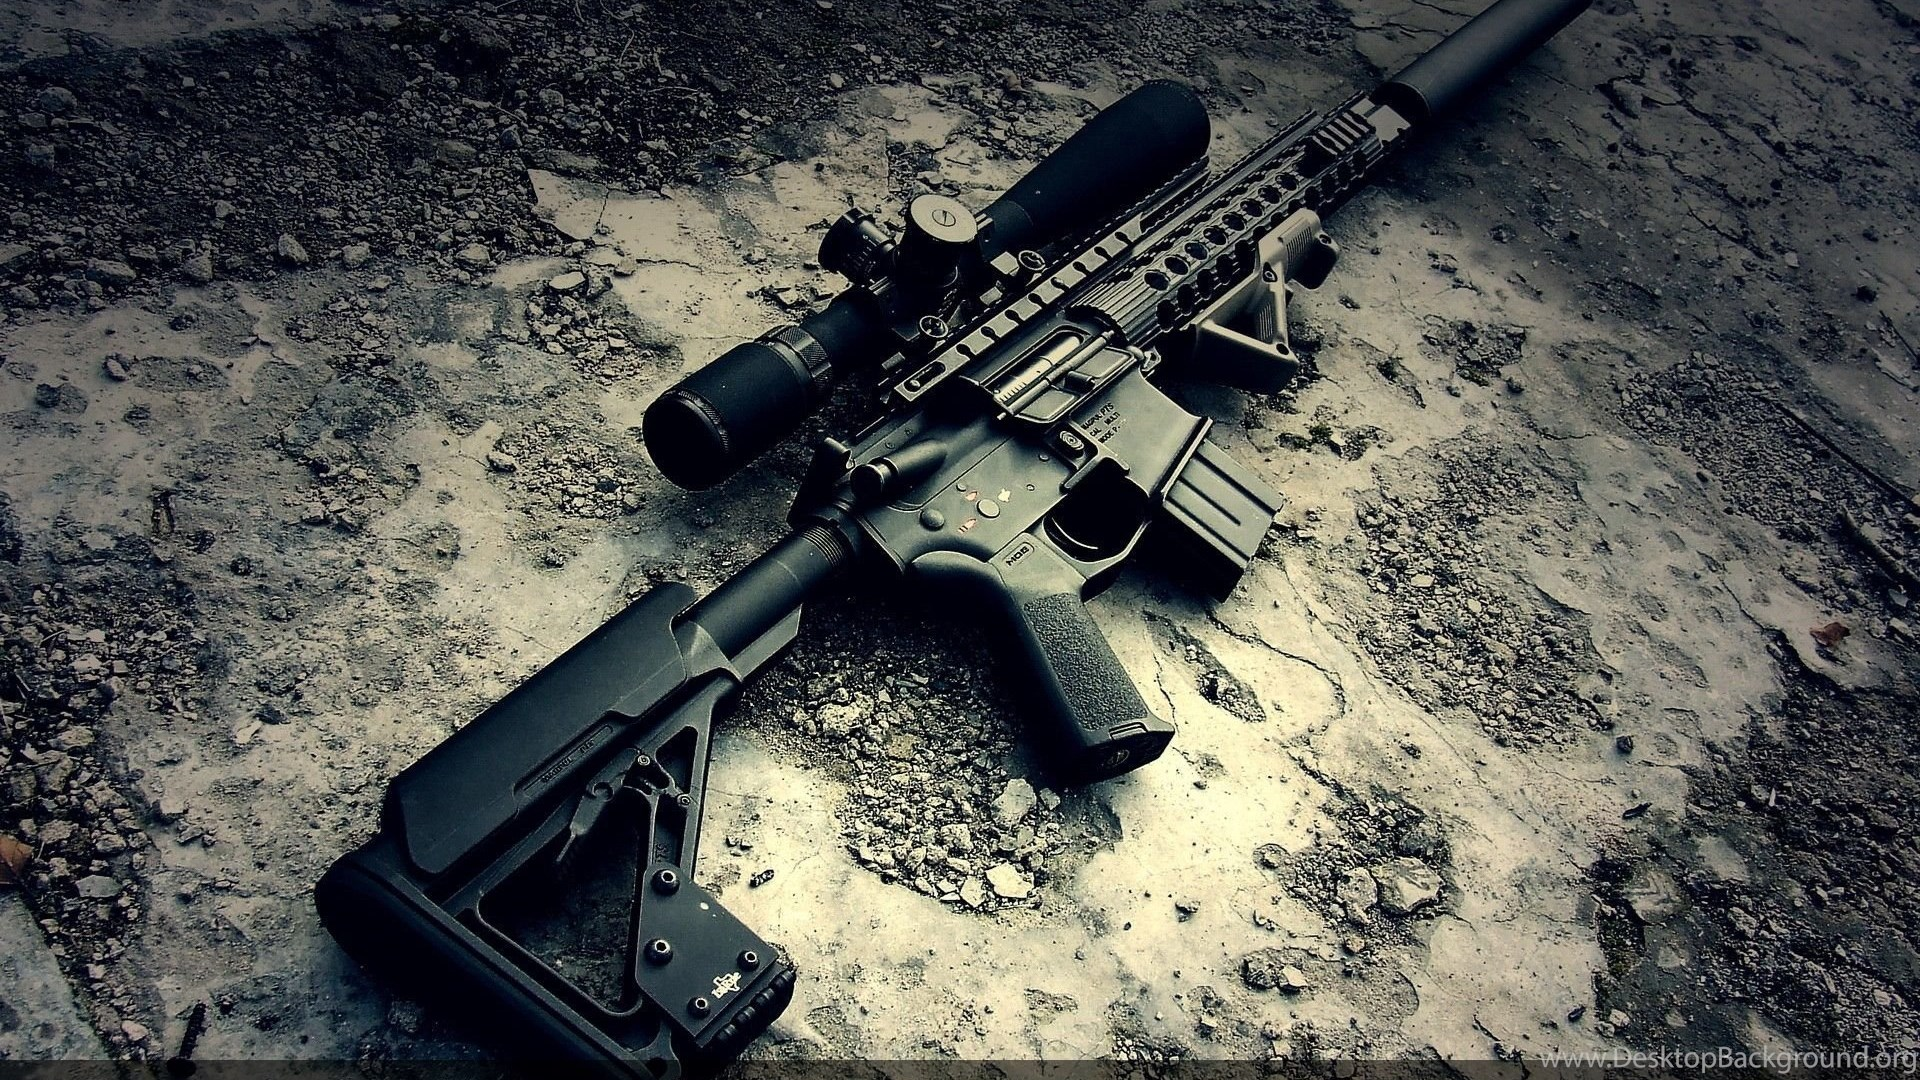 M4a1 Gun With Sniper 4K Or HD Wallpapers For Your PC, Mac Or